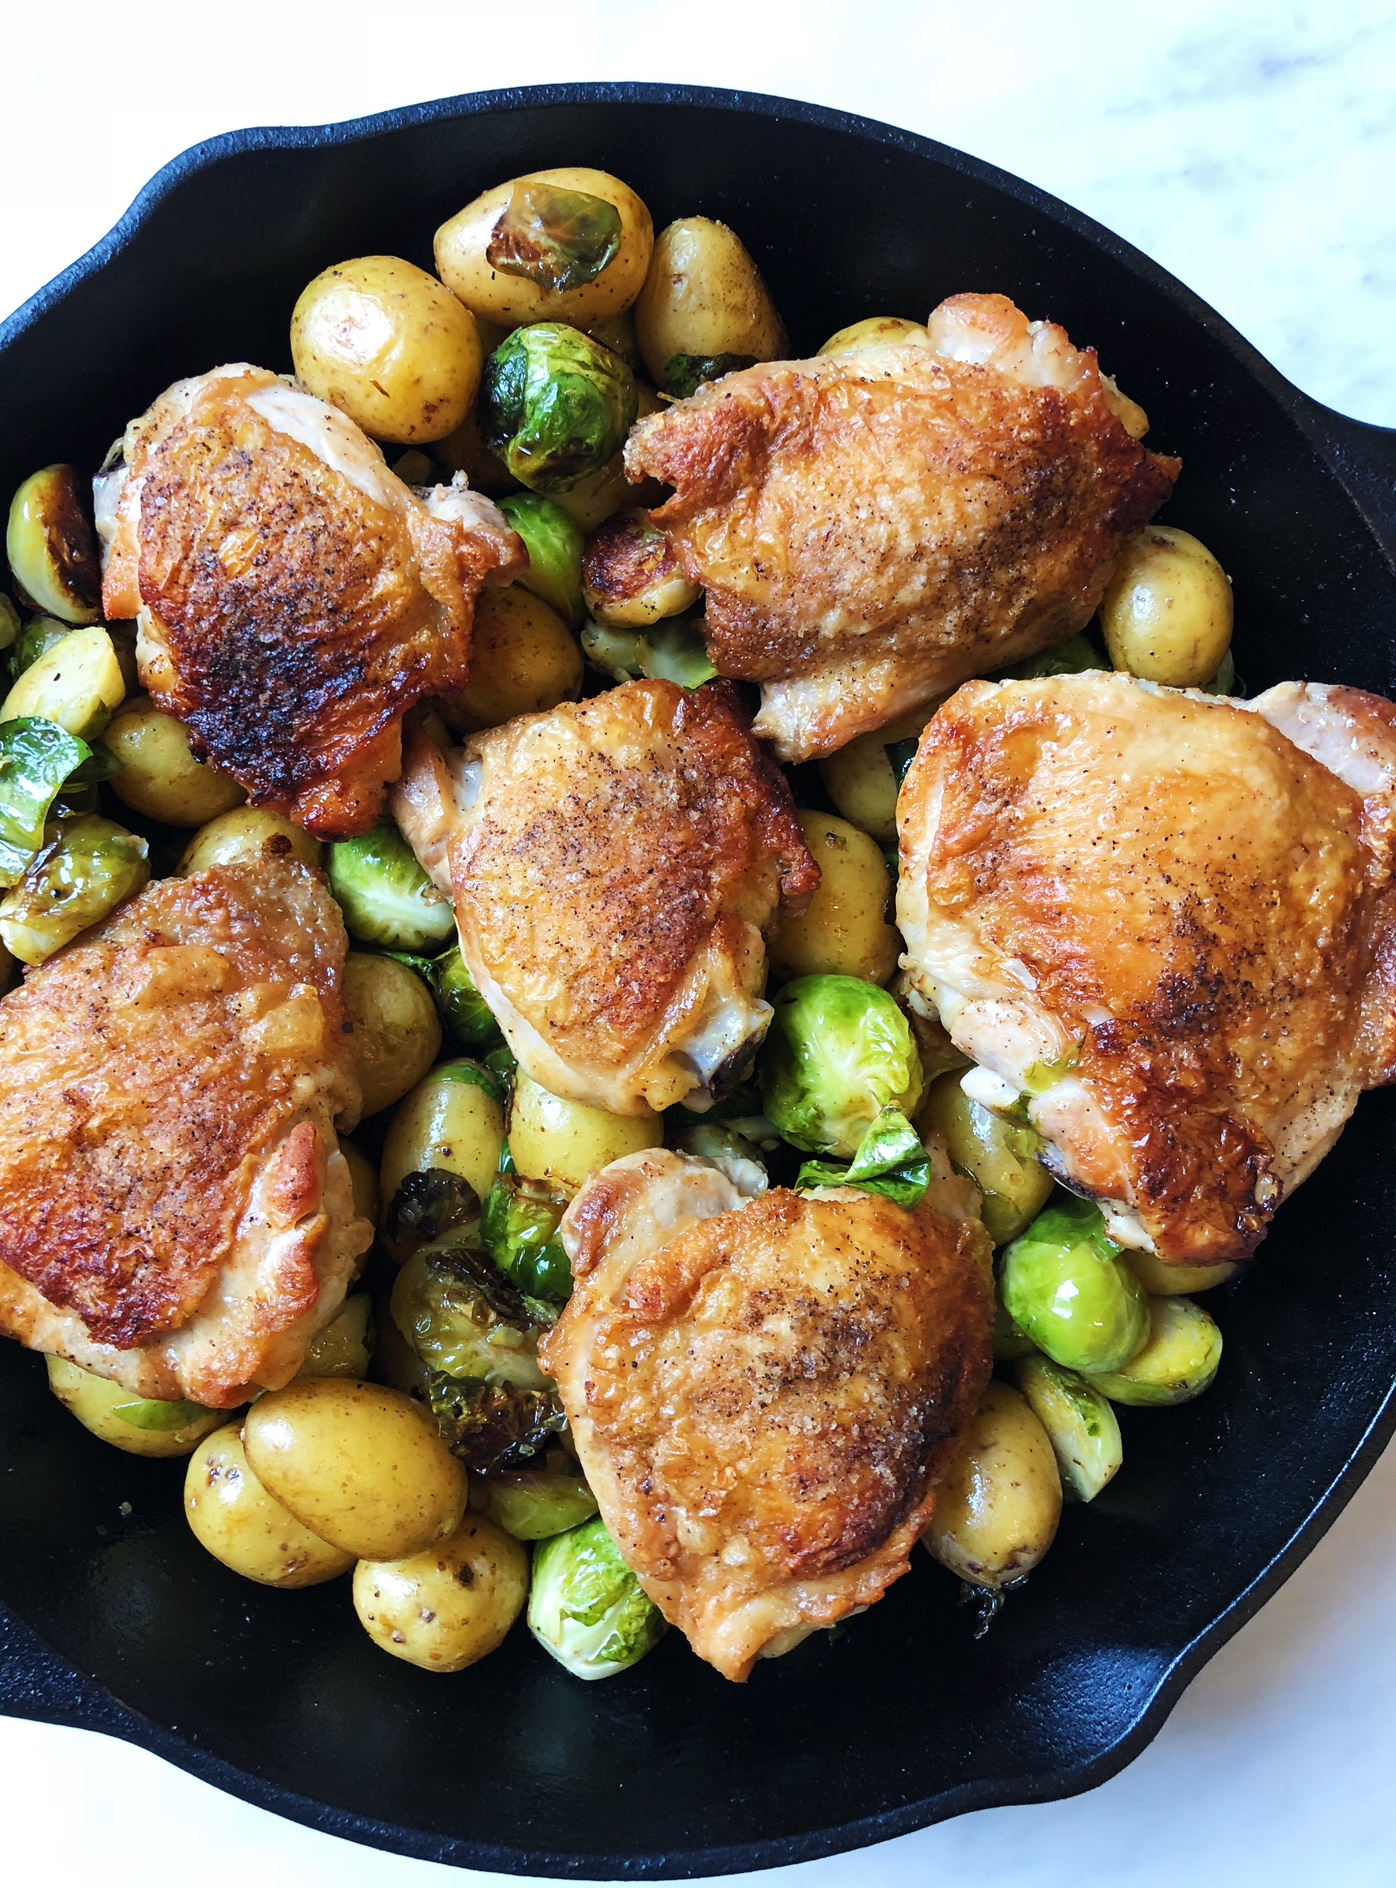 Chicken Thighs With Brussels Sprouts and Potatoes